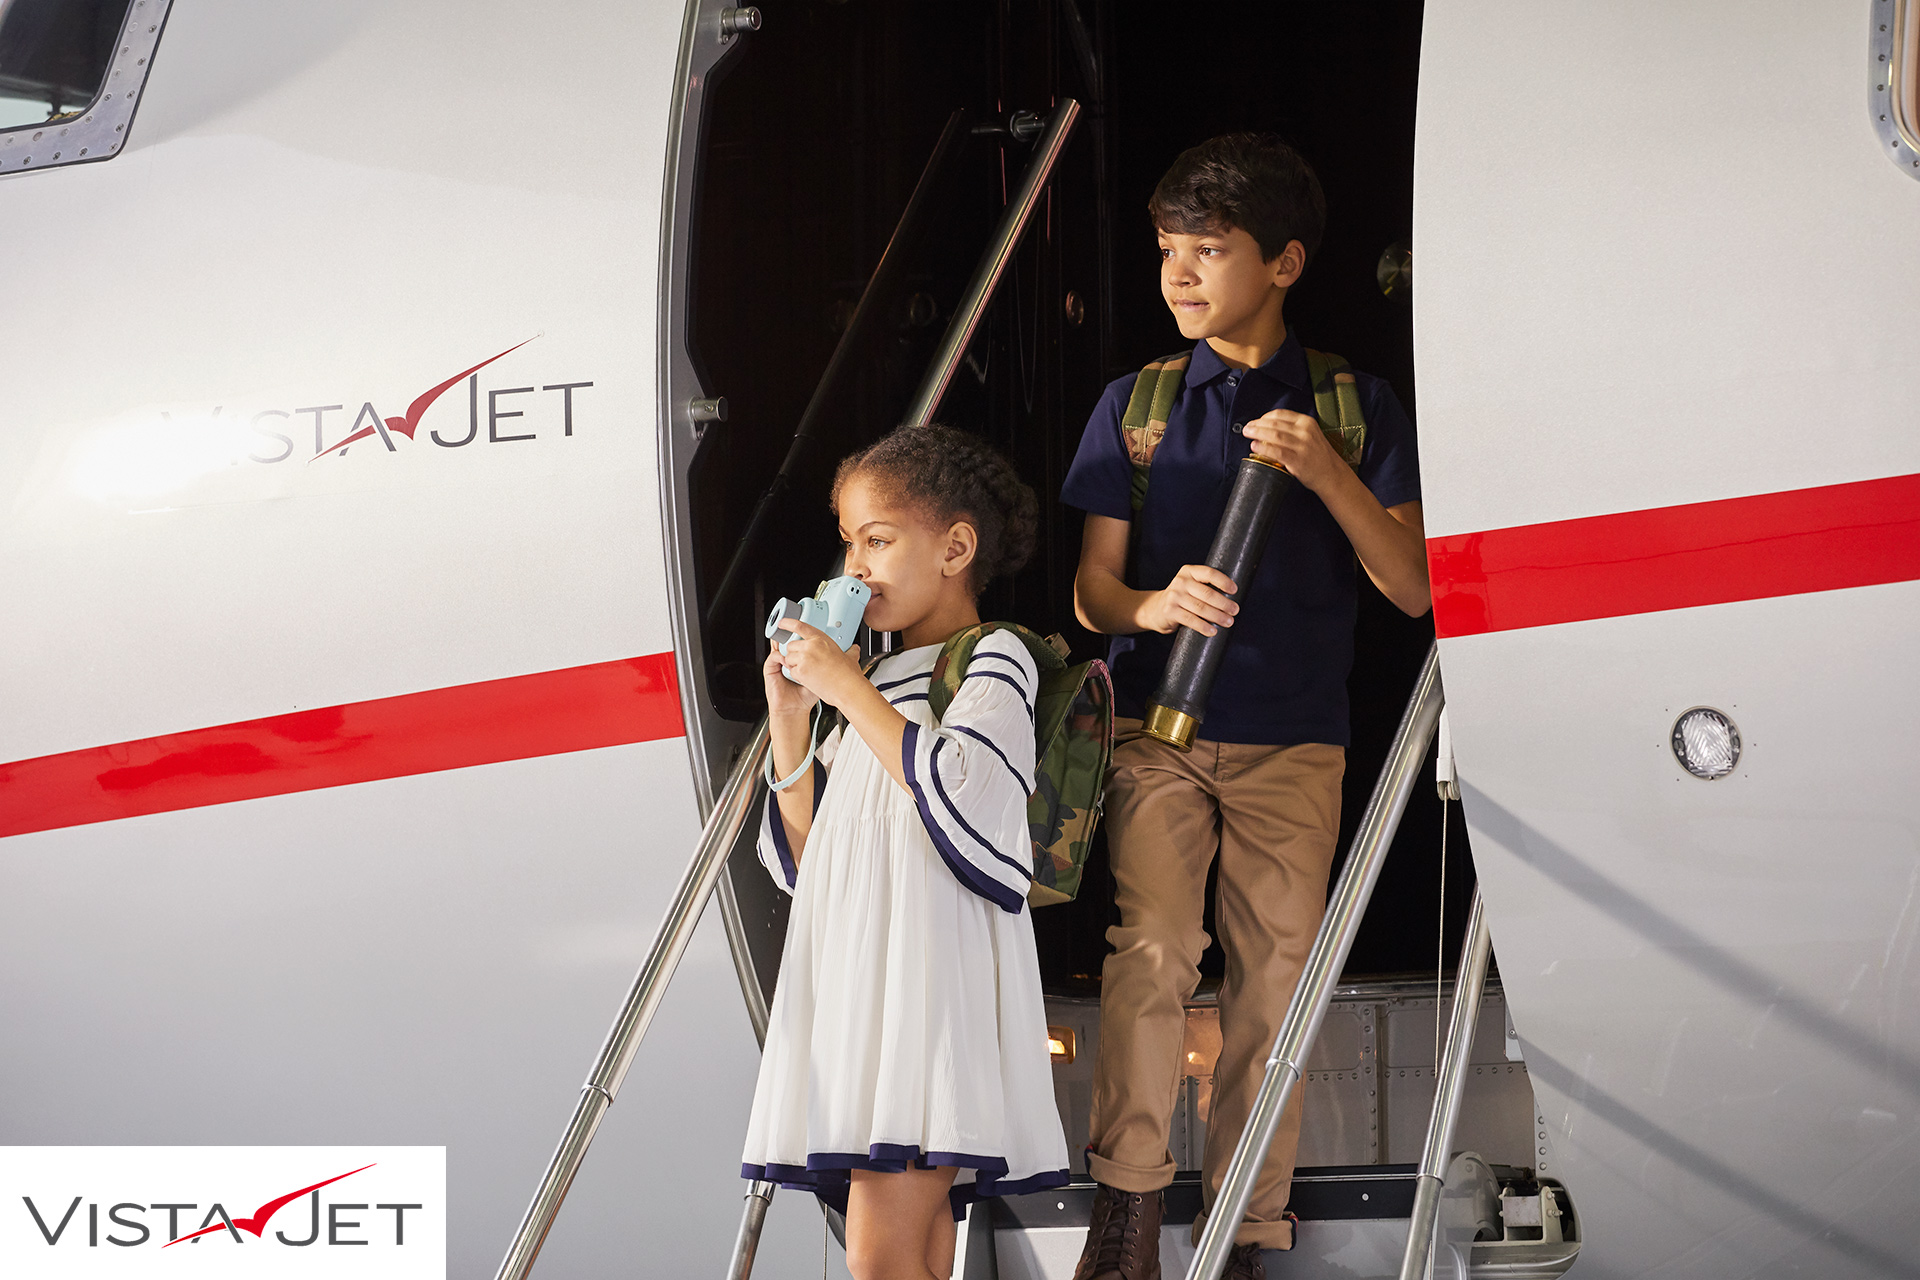 Children disembarking from plane